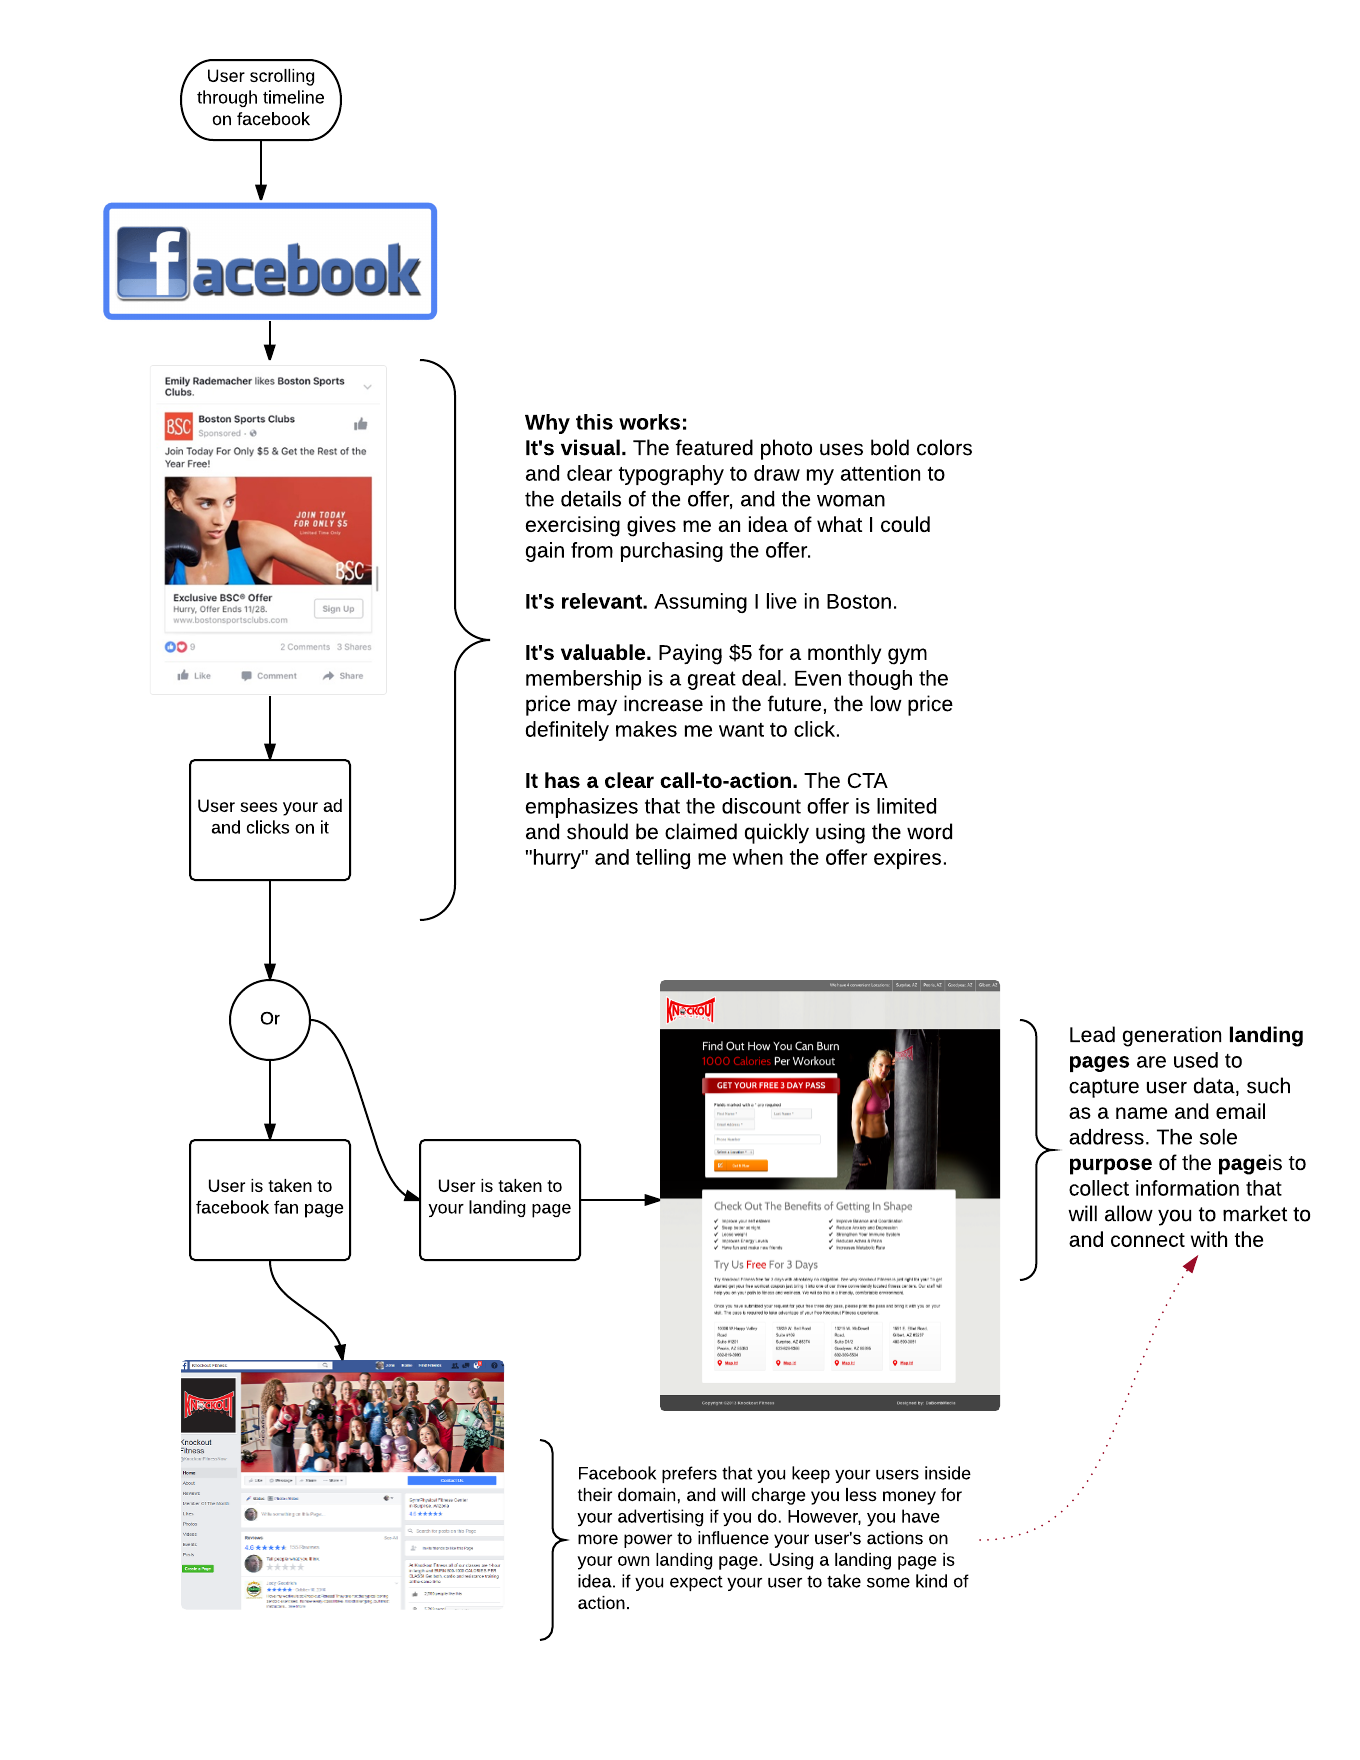 facebook-ad-click-through-flow-new-page